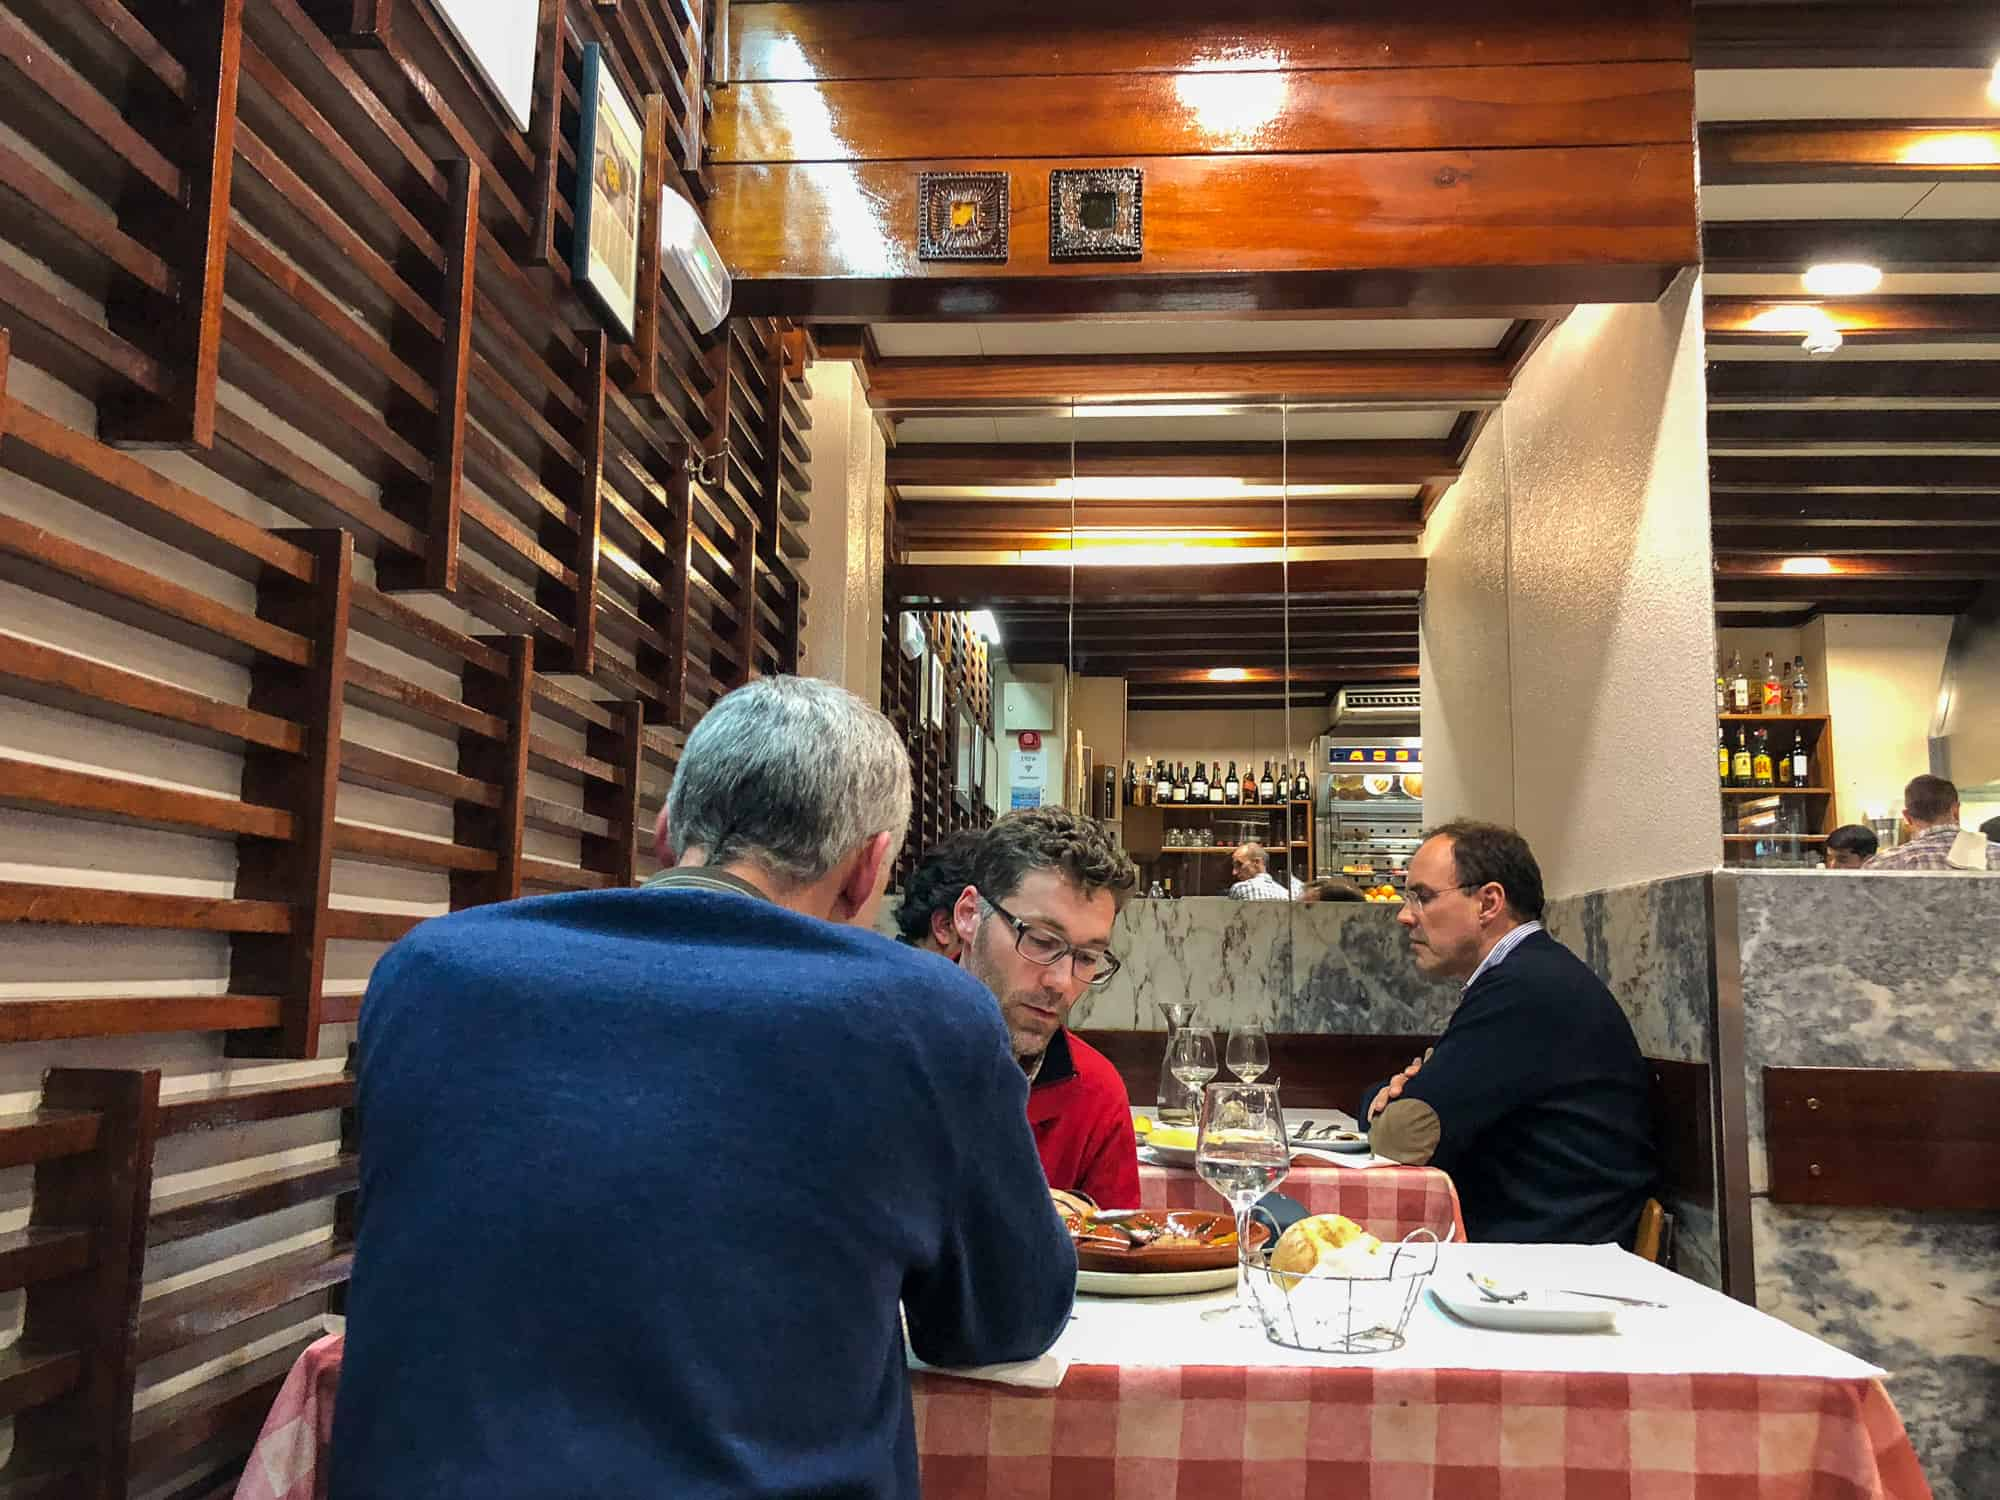 Portugal - Porto - Unusual things to do in the city -Eat authentic fare at O Buraco restaurant